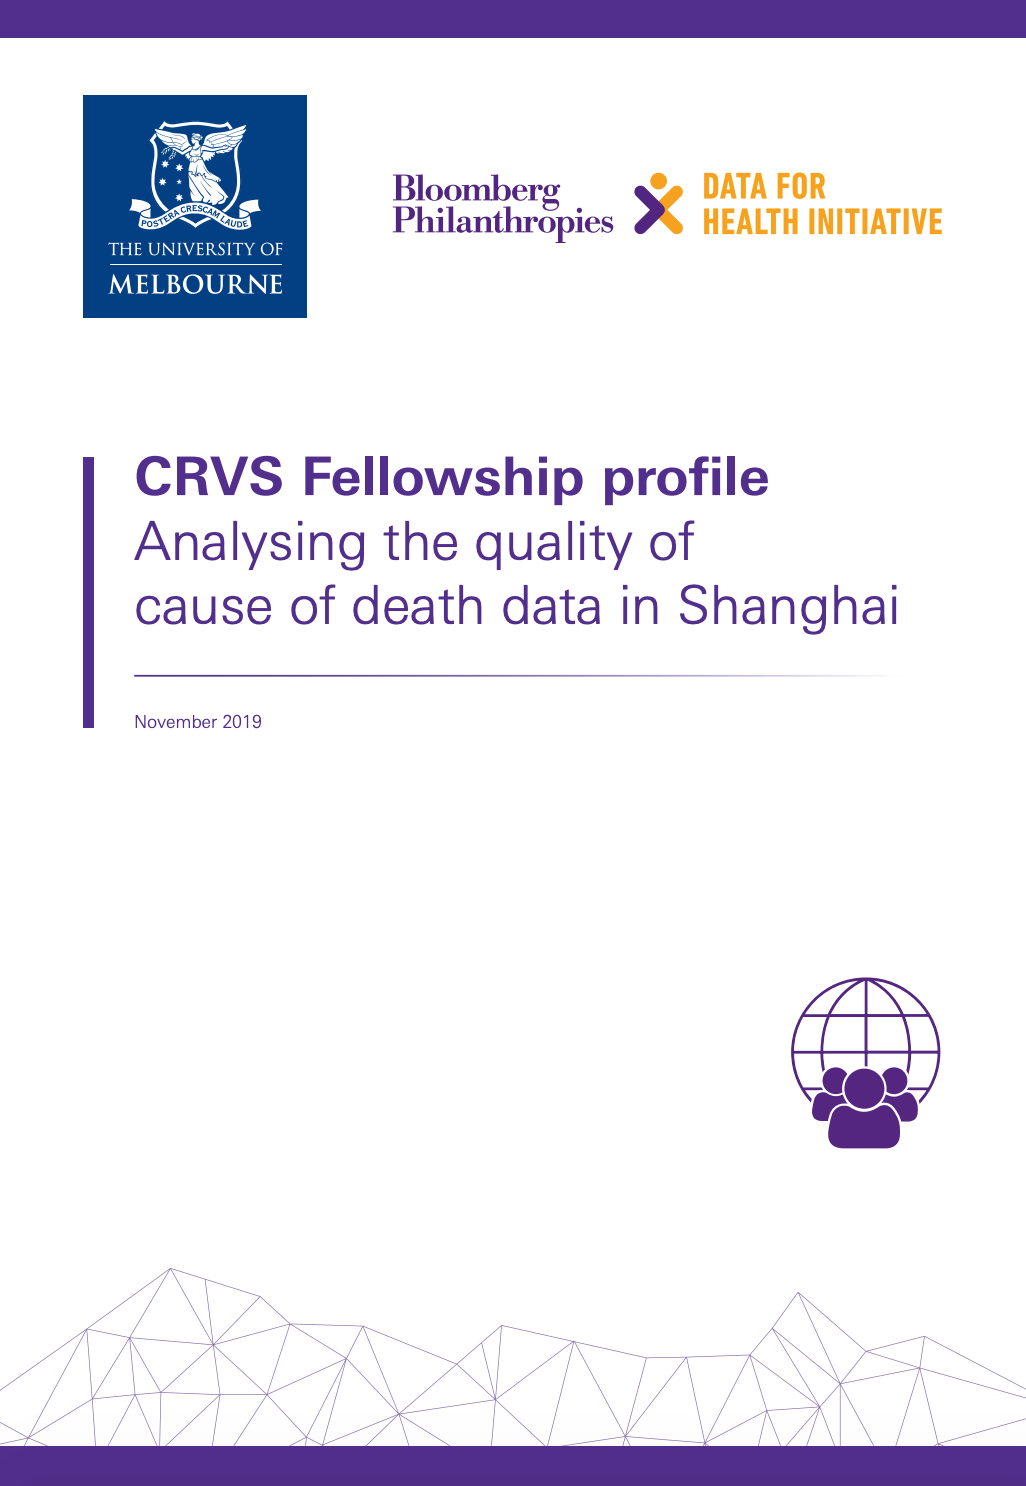 CRVS Fellowship profile Analysing the quality of cause of death data in Shanghai thumbnail